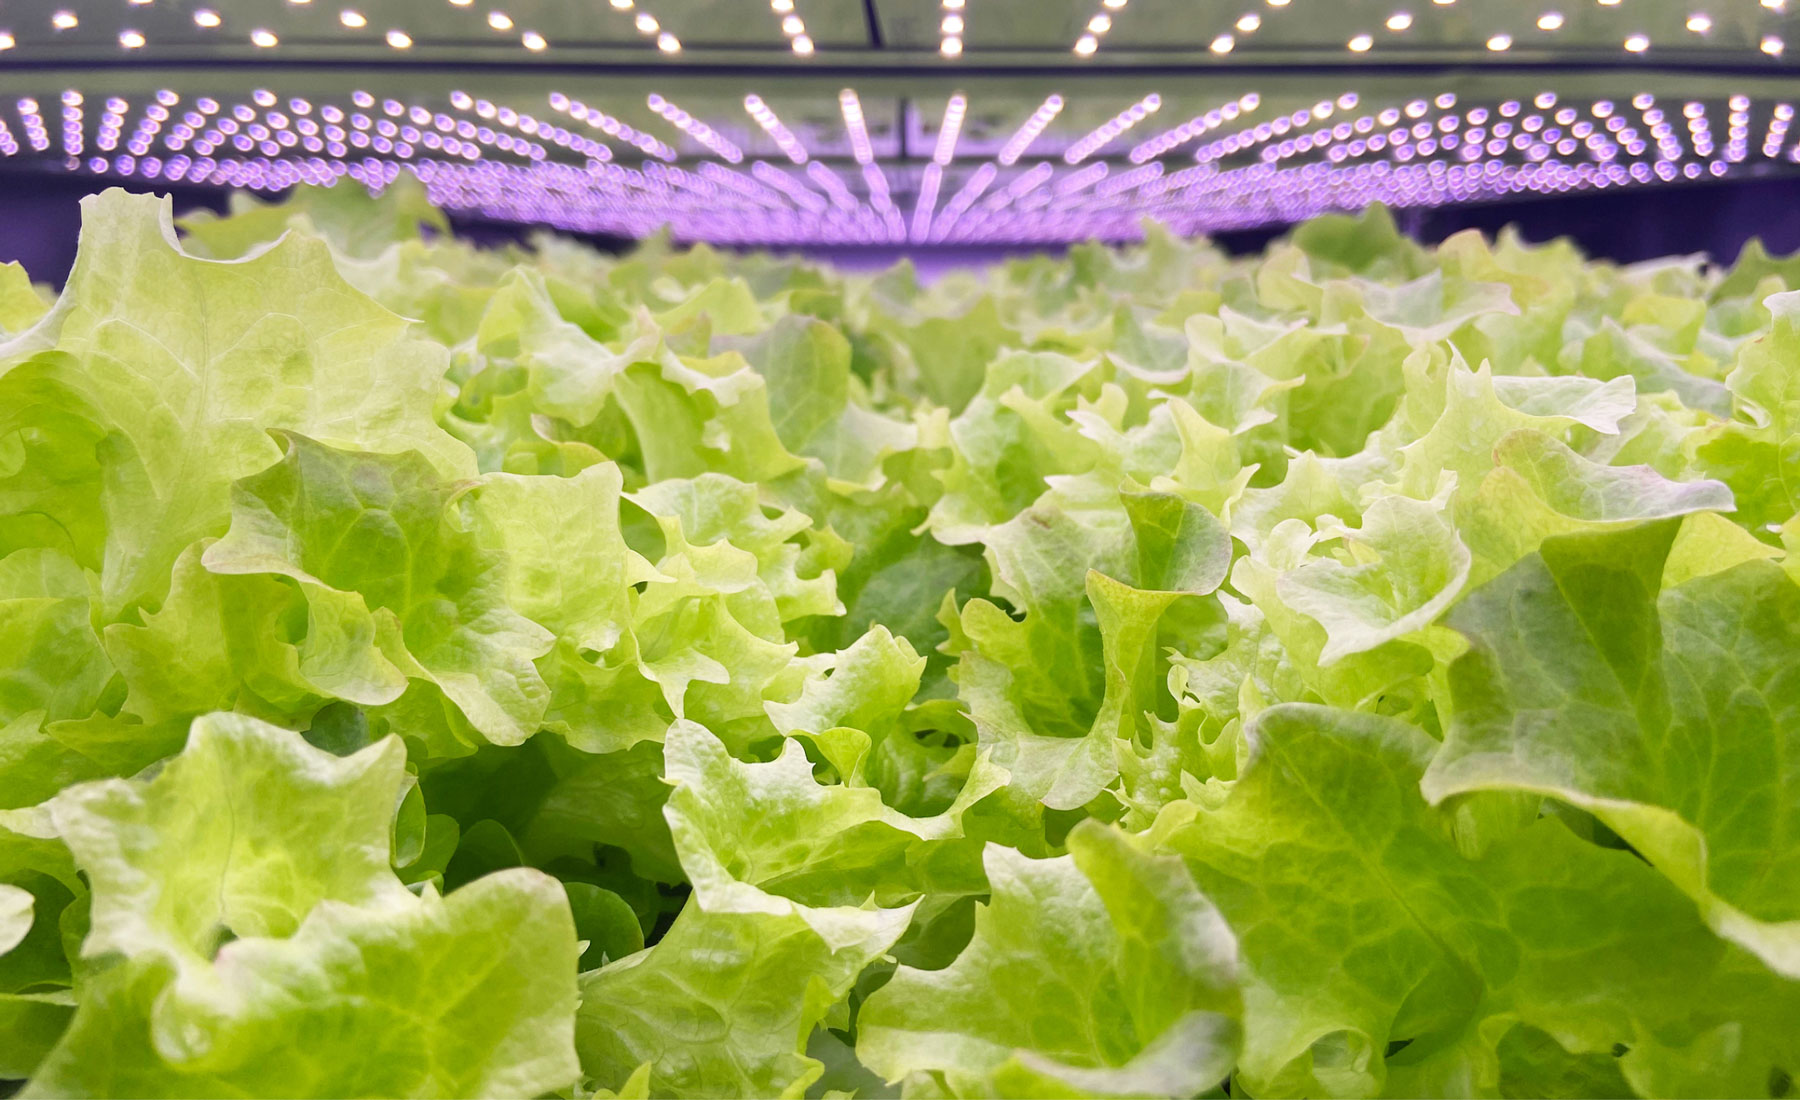 the lettuce that grows using vertical farming